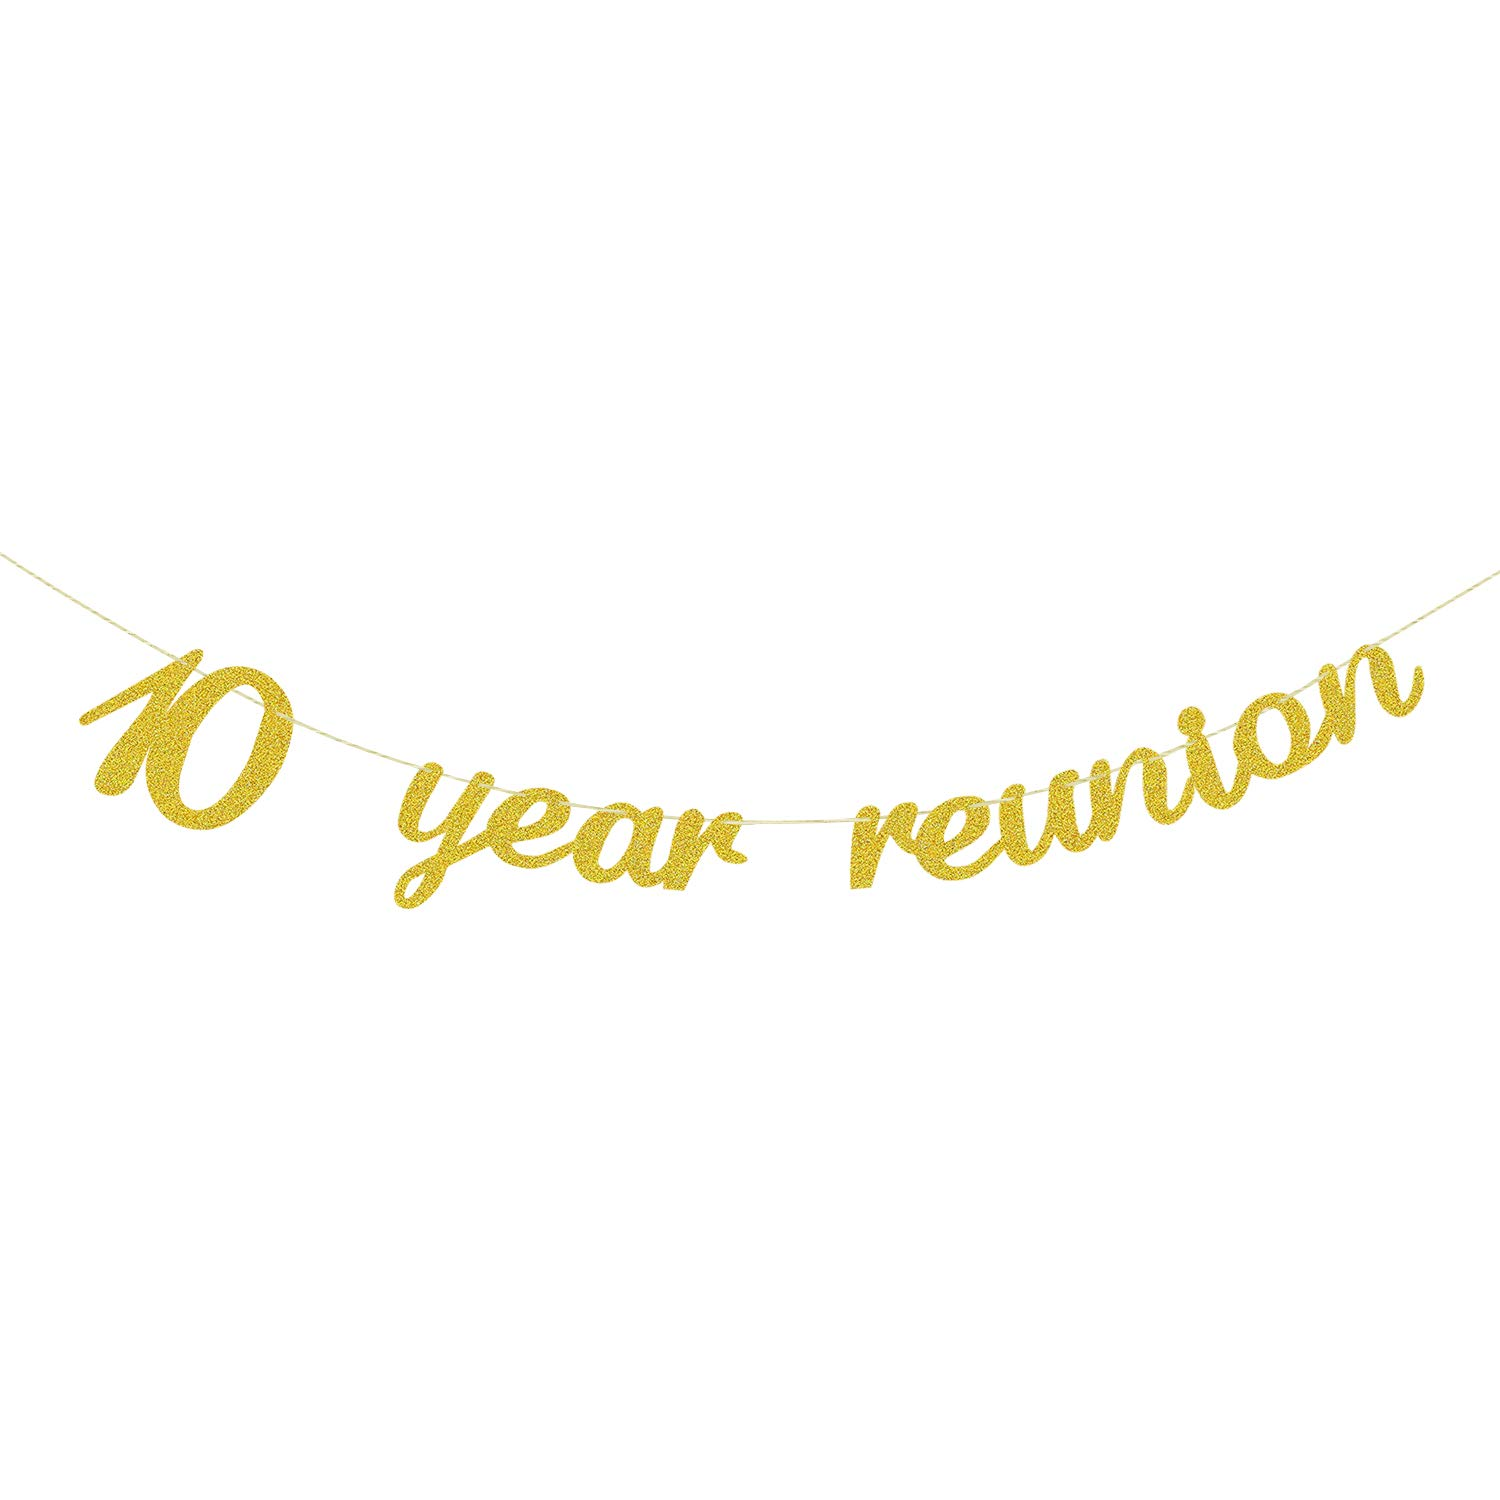 Class of 1989 High School Reunion Party Decorations Class Reunion Banner Reunion Decorations Great Graduation Decorations for Graduation Party Supplies,30 Year Reunion Banner